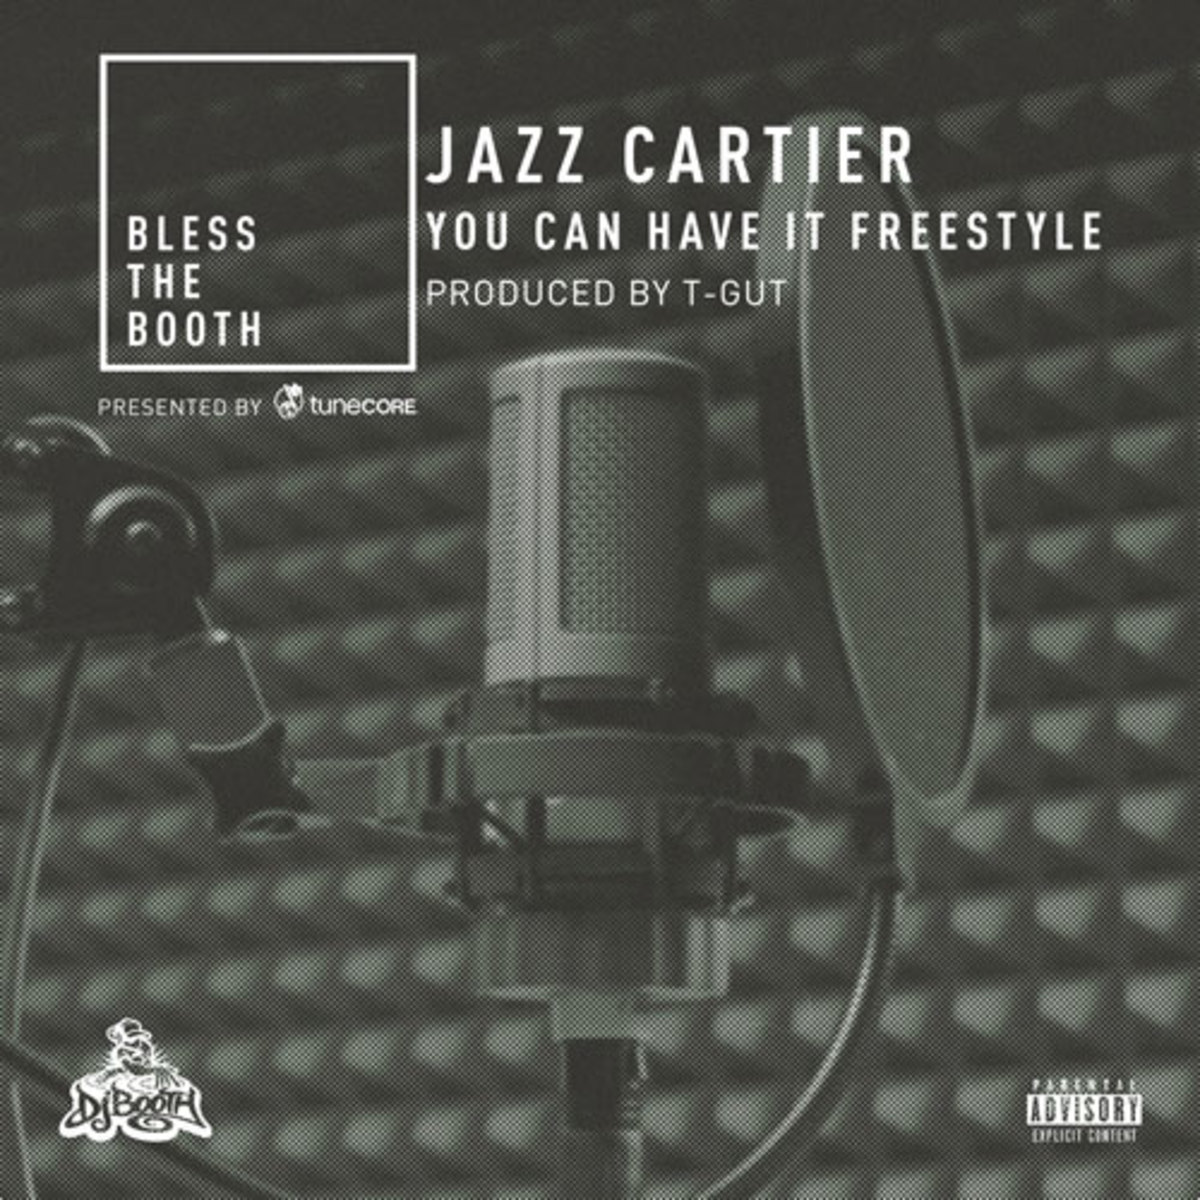 jazz-cartier-btb-artwork.jpg